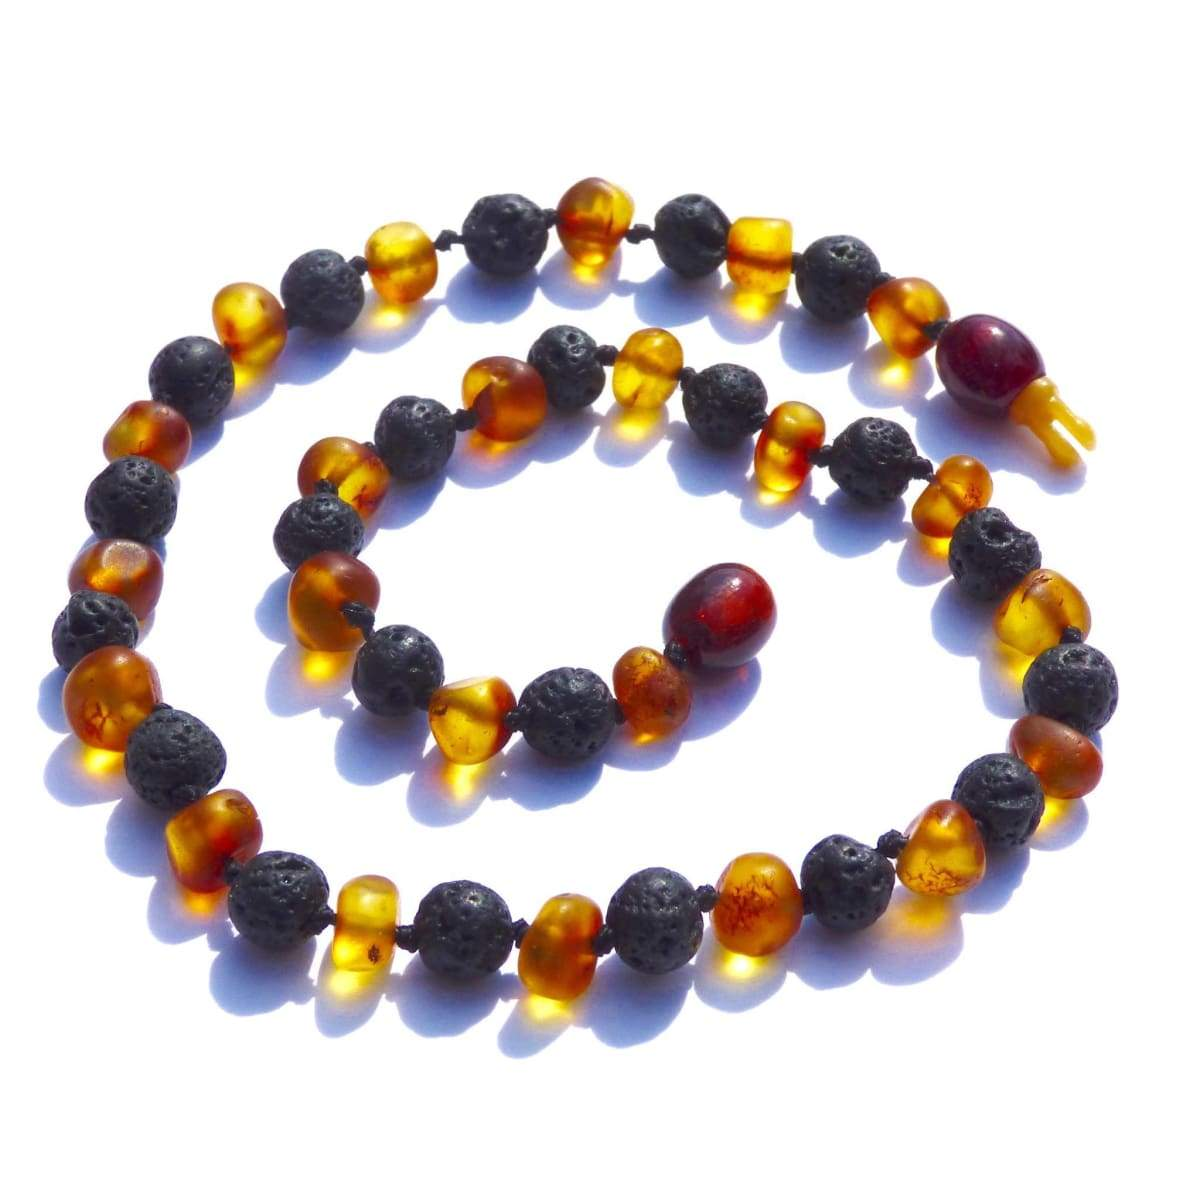 Amber-Gemstone Nutmeg & Lava Stone - 14 Necklace - Pop Clasp - Baltic Amber & Gemstone Jewelry